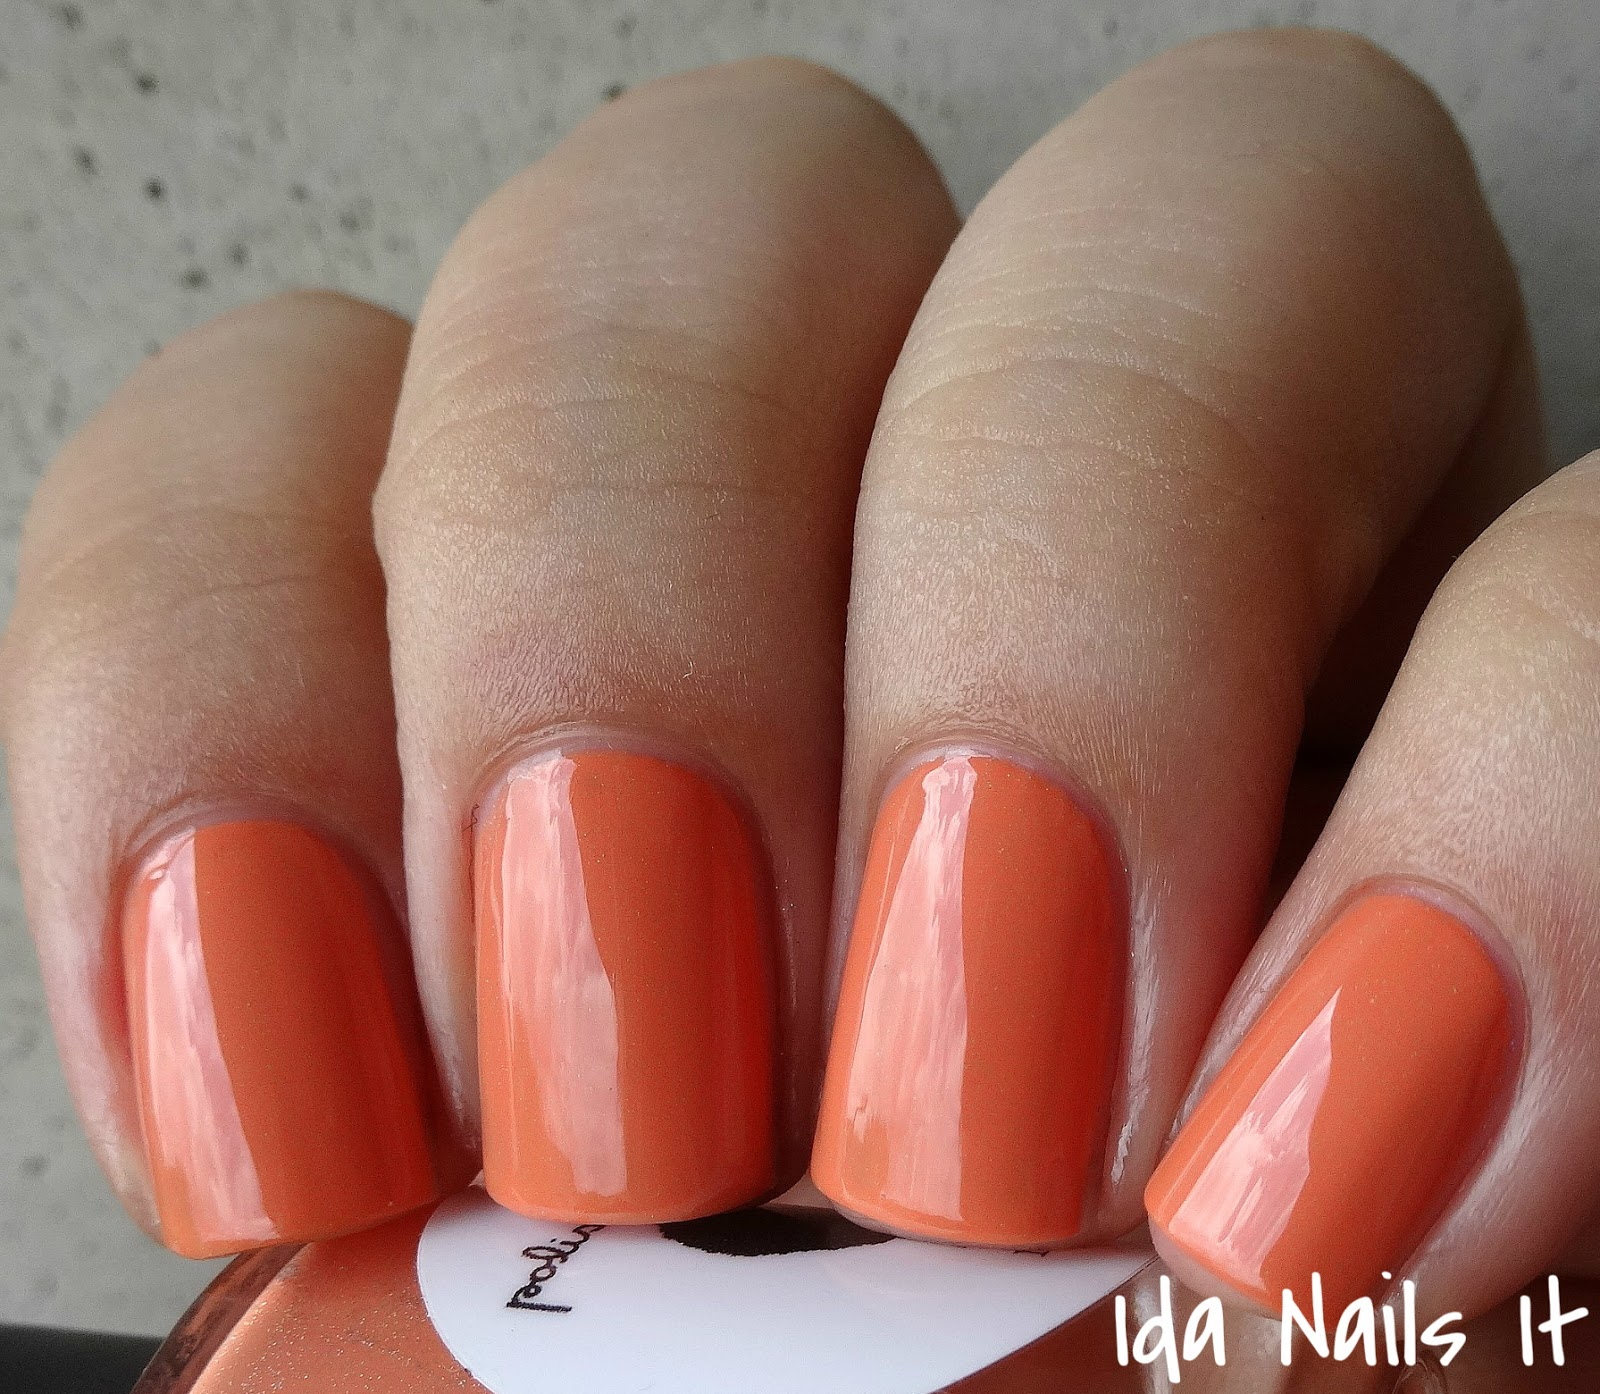 Ida Nails It: Polish My Life The Fruits of Summer Collection ...